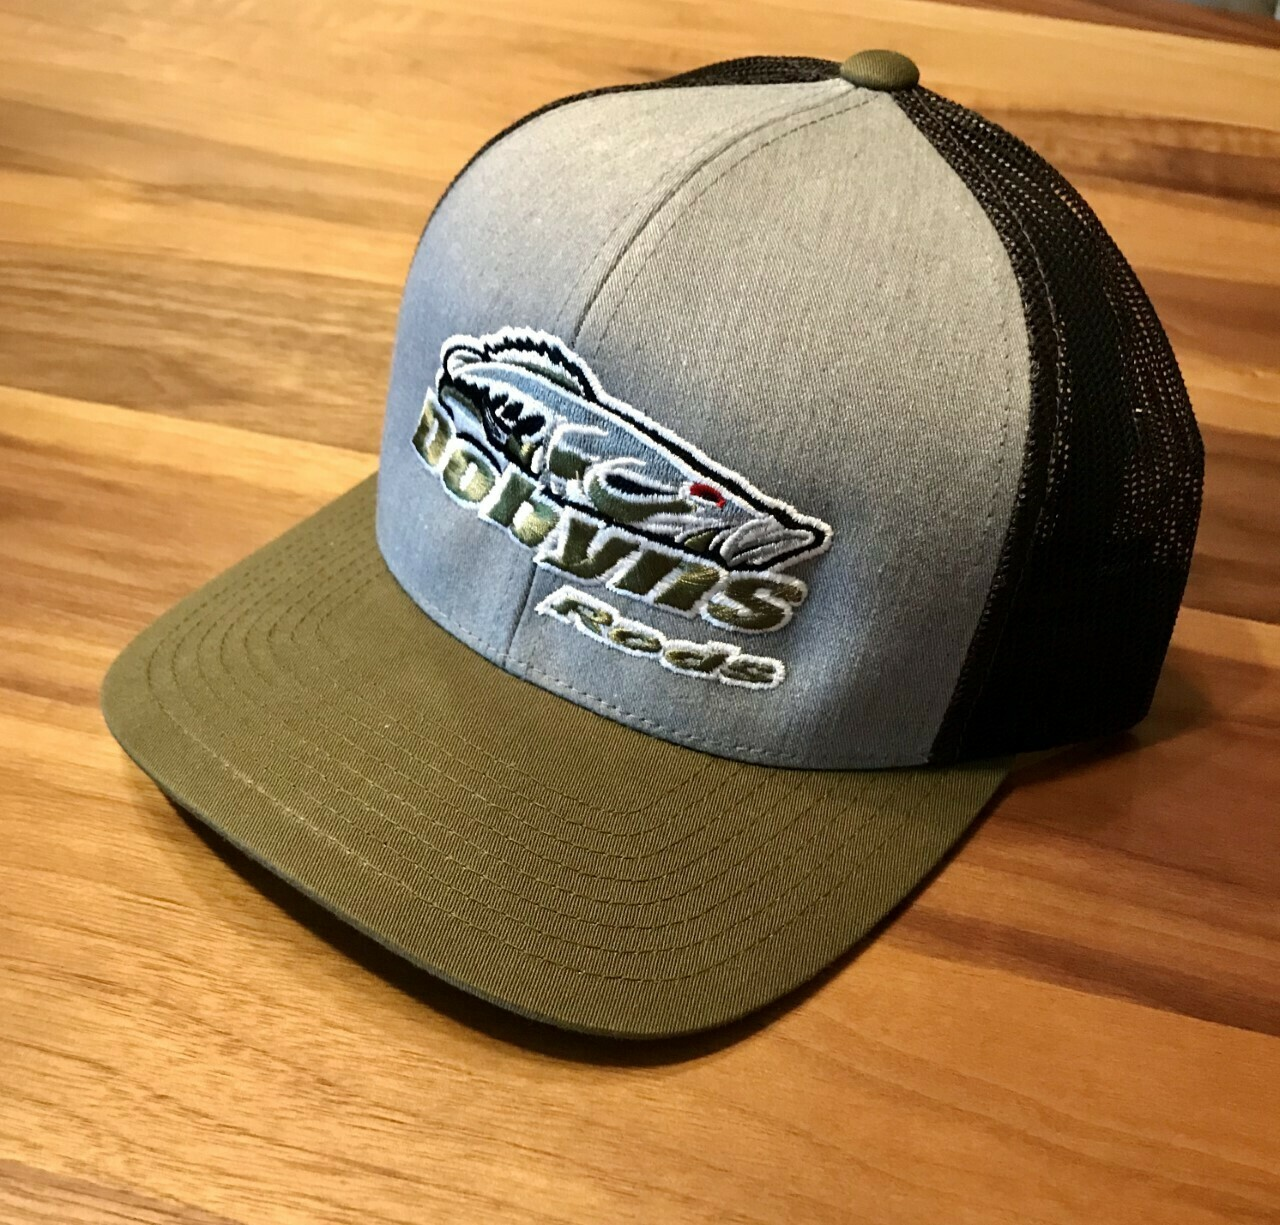 Dobyns Trucker Hat Snap Back